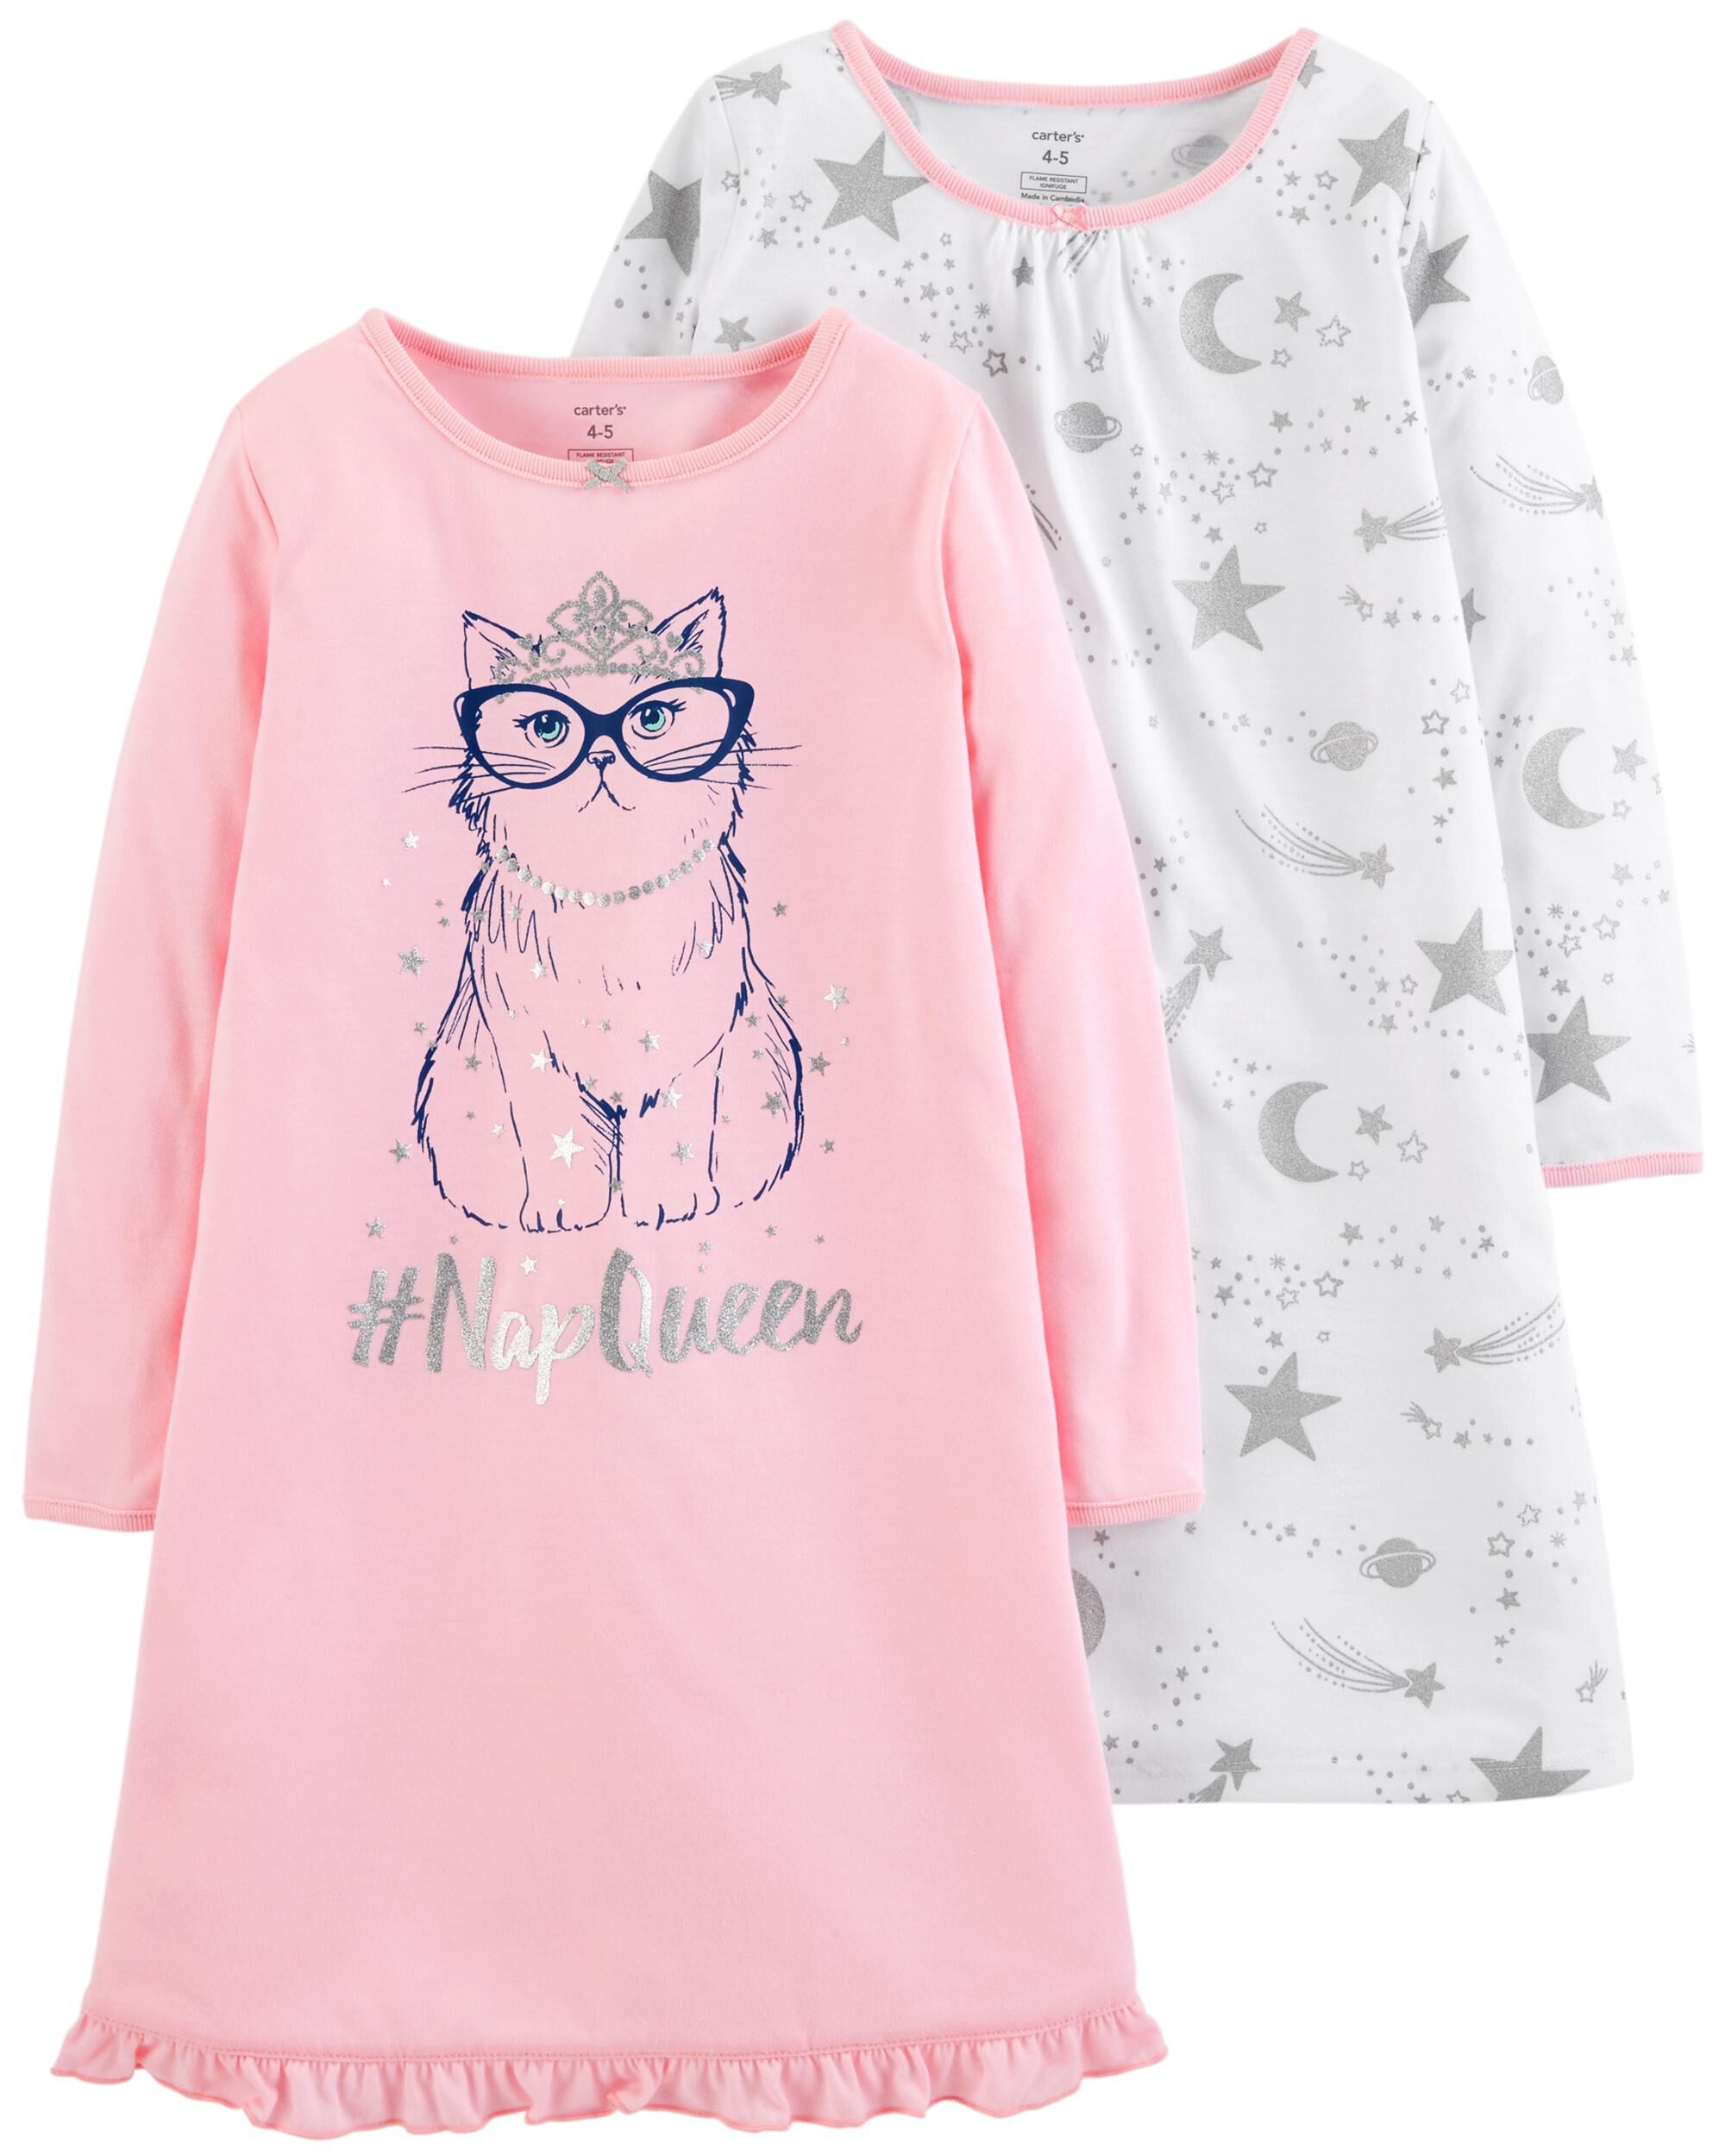 ad57ab1f33 2-Pack Kitty Nightgowns. Loading zoom